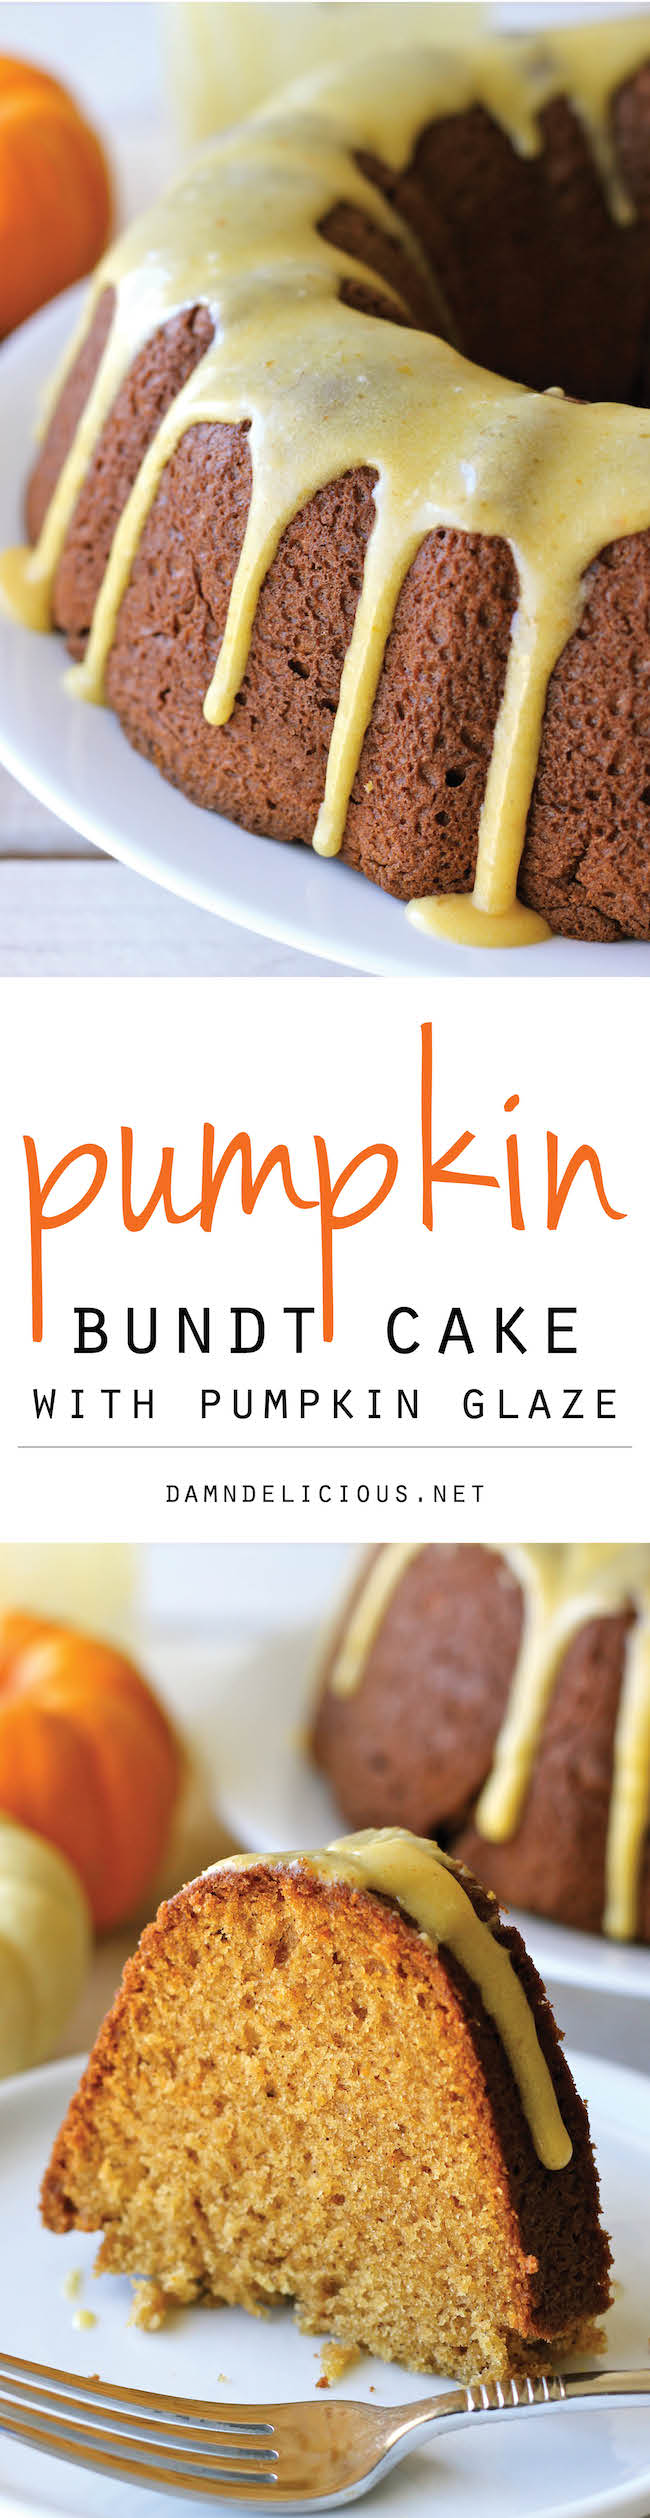 Pumpkin Bundt Cake with Pumpkin Glaze - A perfect fall cake that you'll want to make it all year long!